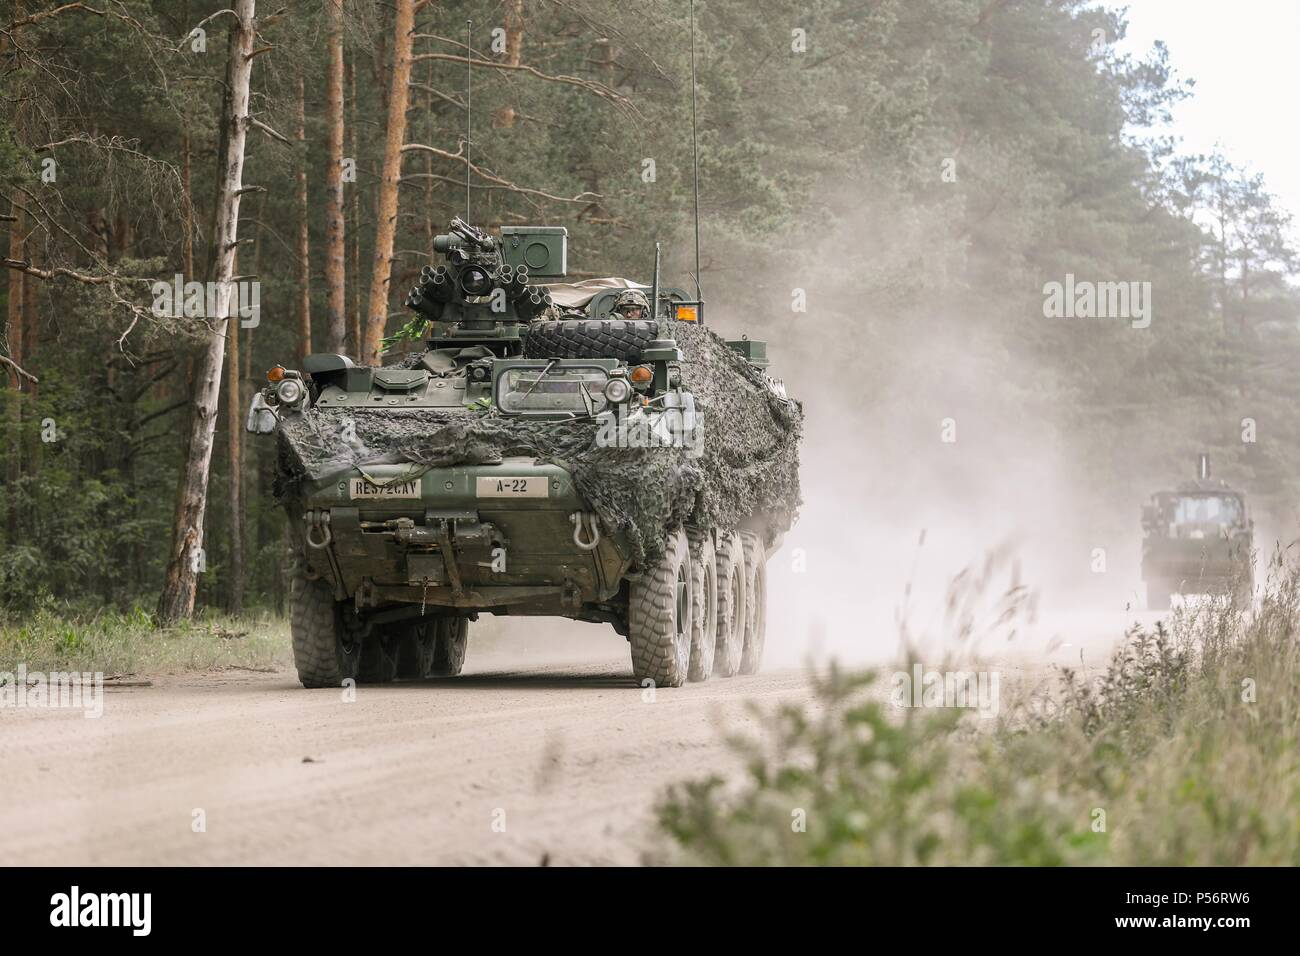 A Stryker Infantry Carrier Vehicle departs Rukla, Lithuania to begin preparations for the upcoming wet gap crossing, June 12, 2018, June 12, 2018. The Regimental Engineer Squadron, 2d Cavalry Regiment will facilitate a wet gap crossing with the 130th Deutsch Engineer Battalion. () - Stock Image